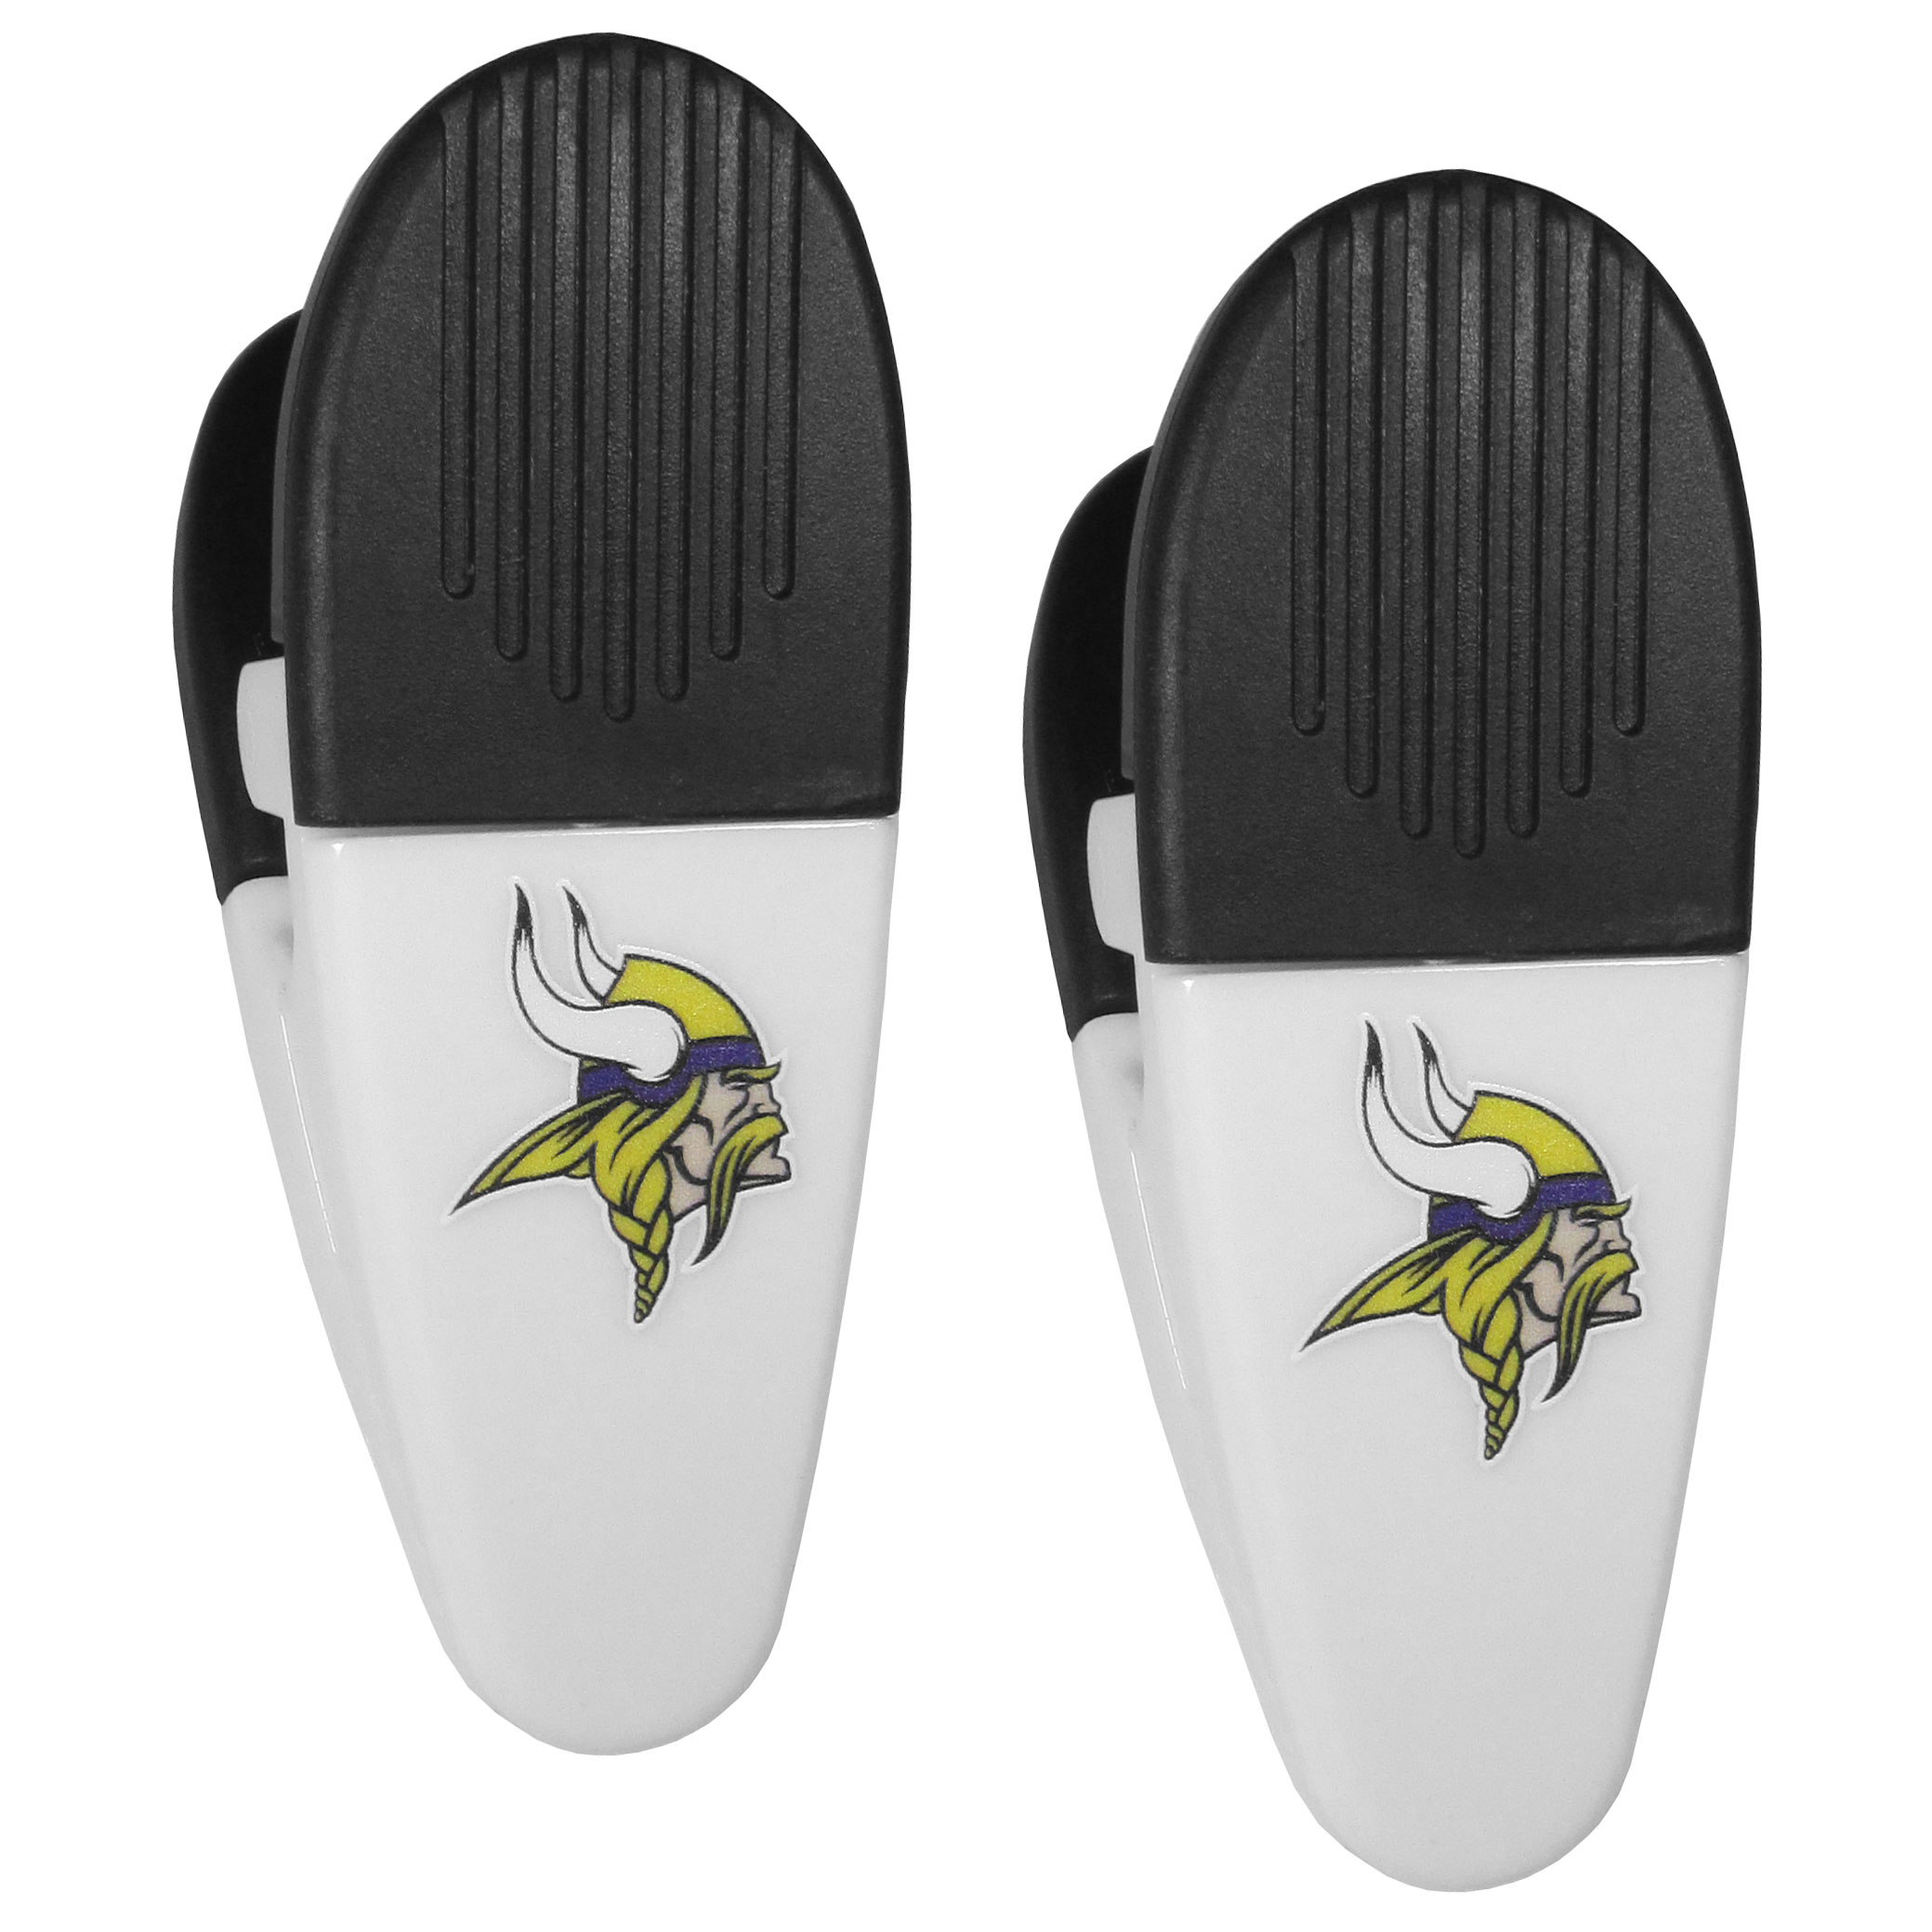 Minnesota Vikings Mini Chip Clip Magnets, 2 pk - Our Minnesota Vikings chip clip magnets feature a crisp team logo on the front of the clip. The clip is perfect for sealing chips for freshness and with the powerful magnet on the back it can be used to attach notes to the fridge or hanging your child's artwork. Set of 2 magnet clips, each clip is 3.5 inches tall and 1.25 inch wide.